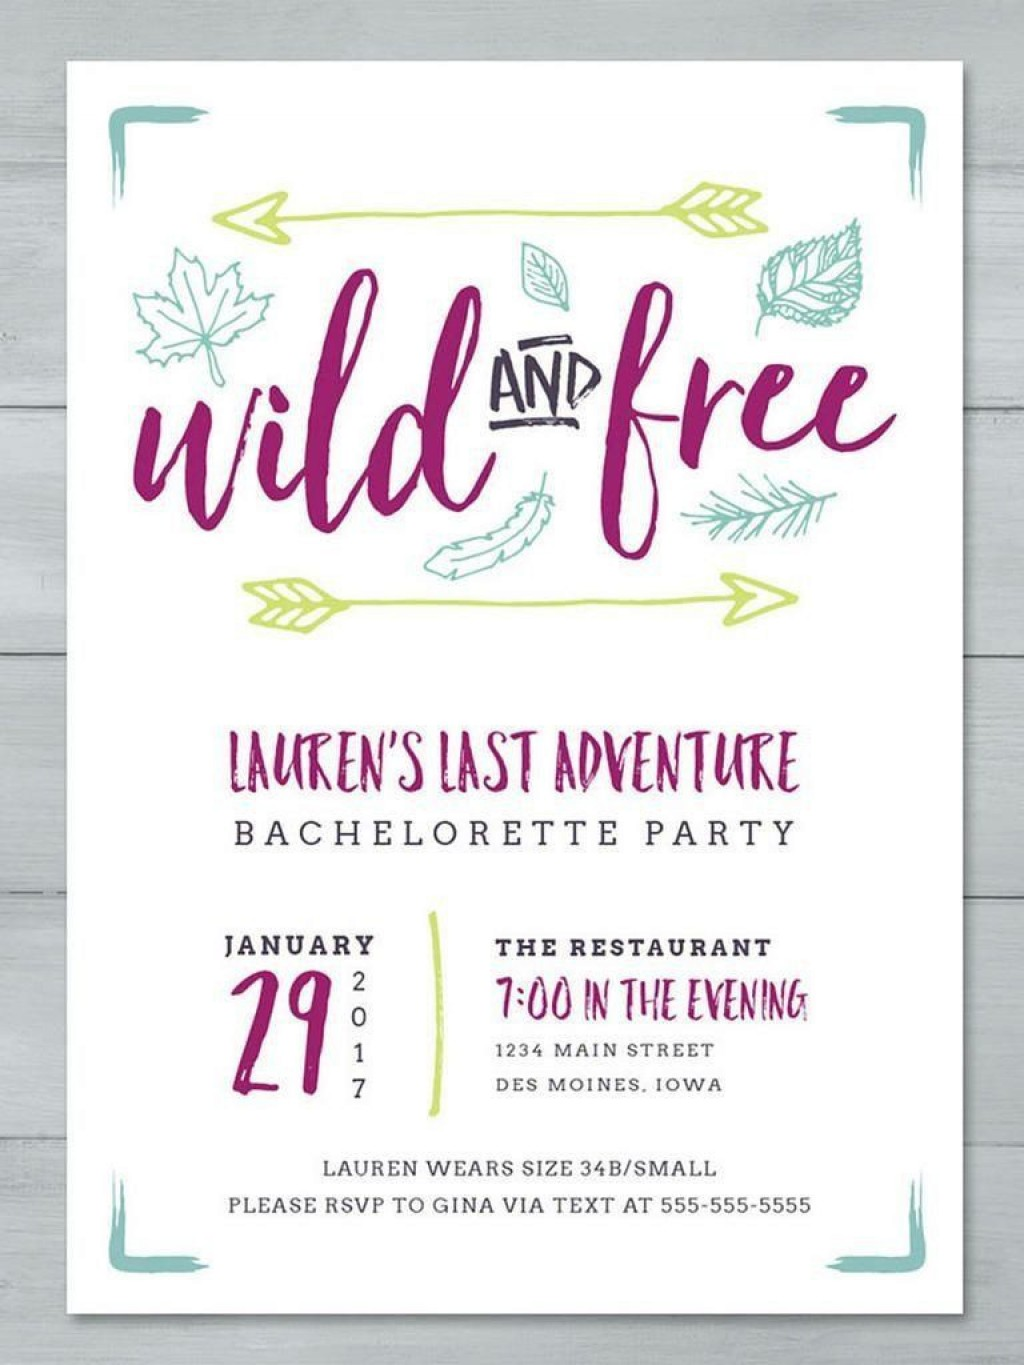 003 Impressive Bachelorette Party Invitation Template Word Free High Def Large